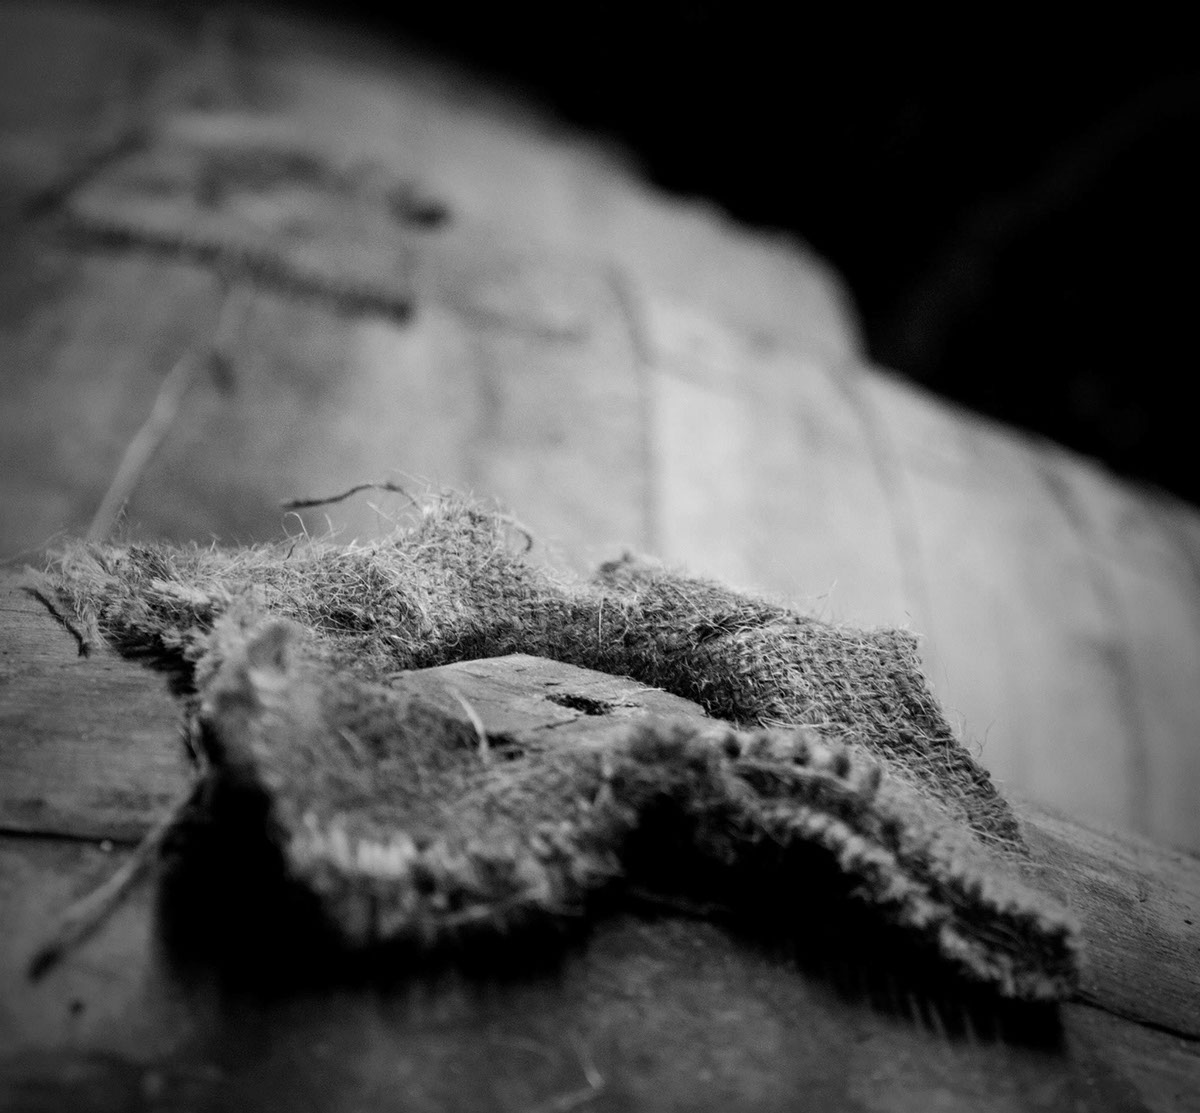 brewery distillery brewing distilling Whisky gin beer photo details